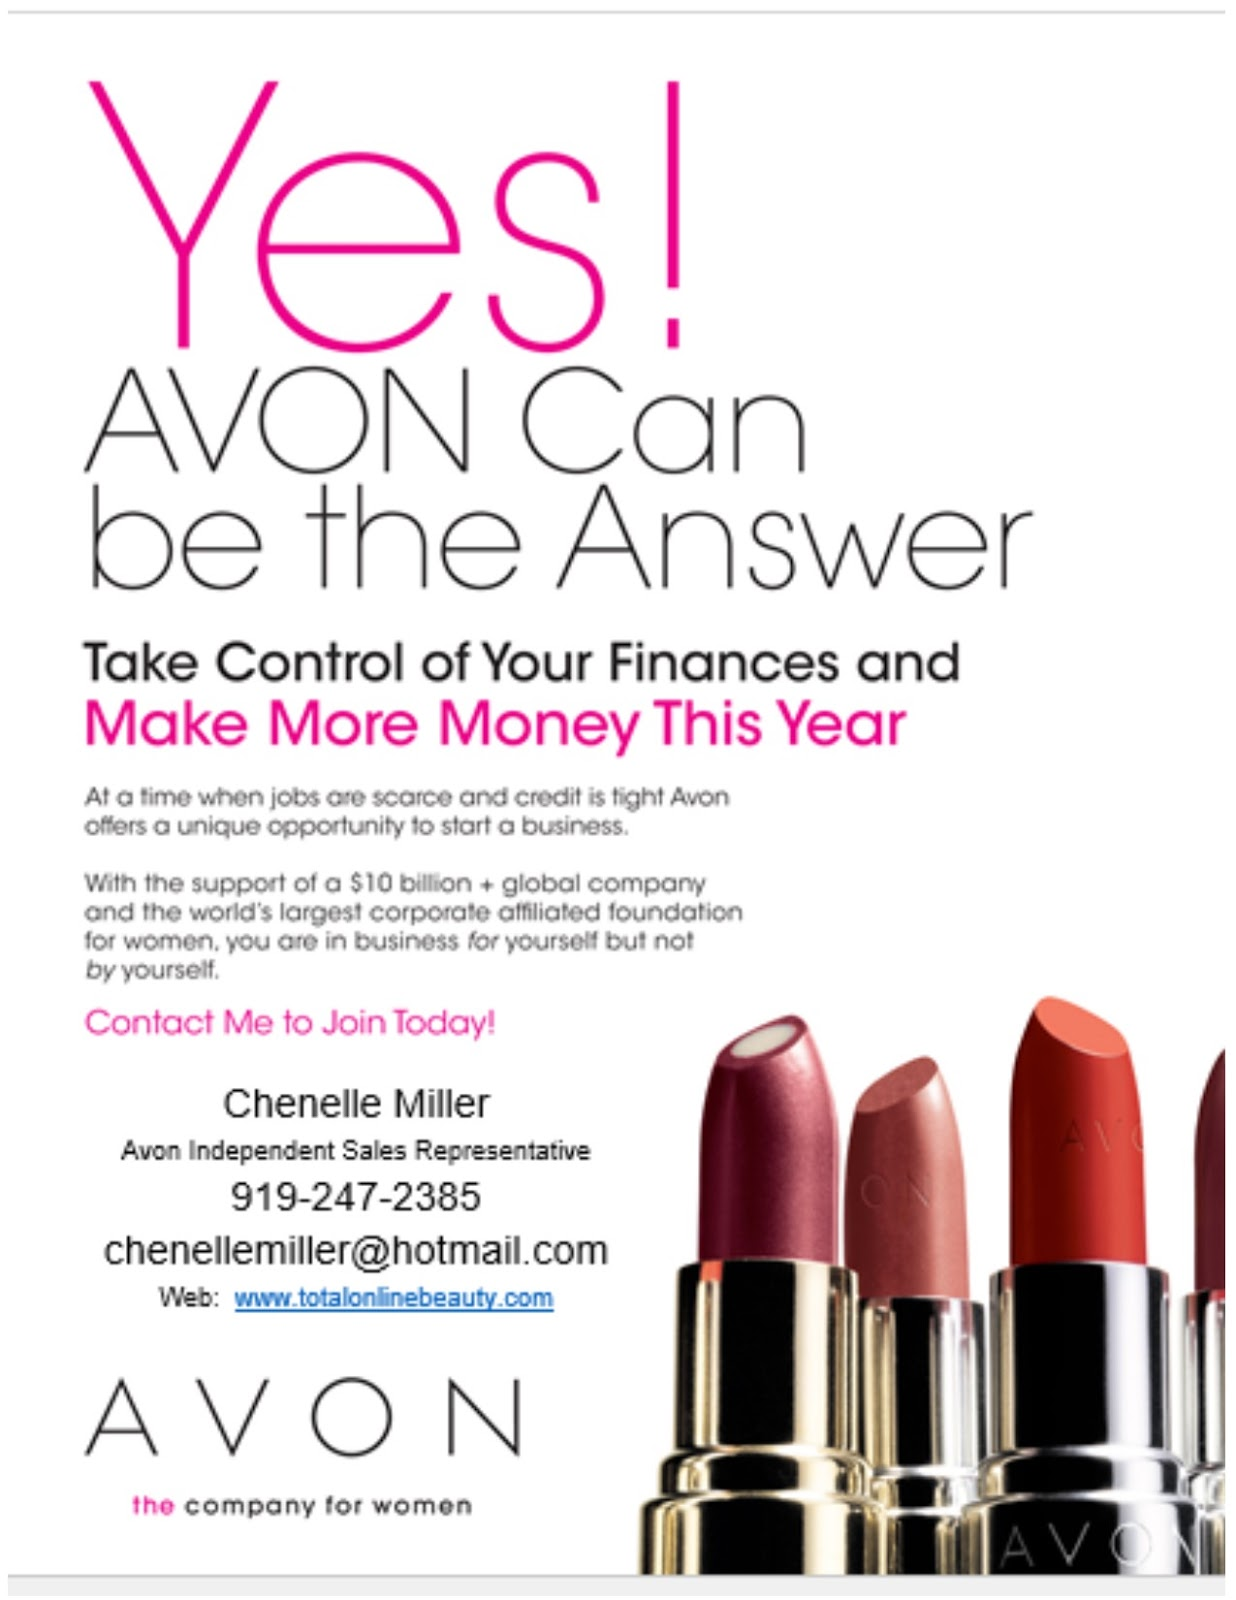 """Working At Avon. New Avon, LLC (""""Avon"""") is a leading social selling company in the US, Puerto Rico and Canada. For over years, Avon has been empowering entrepreneurial-minded women to grow a business on their own terms."""